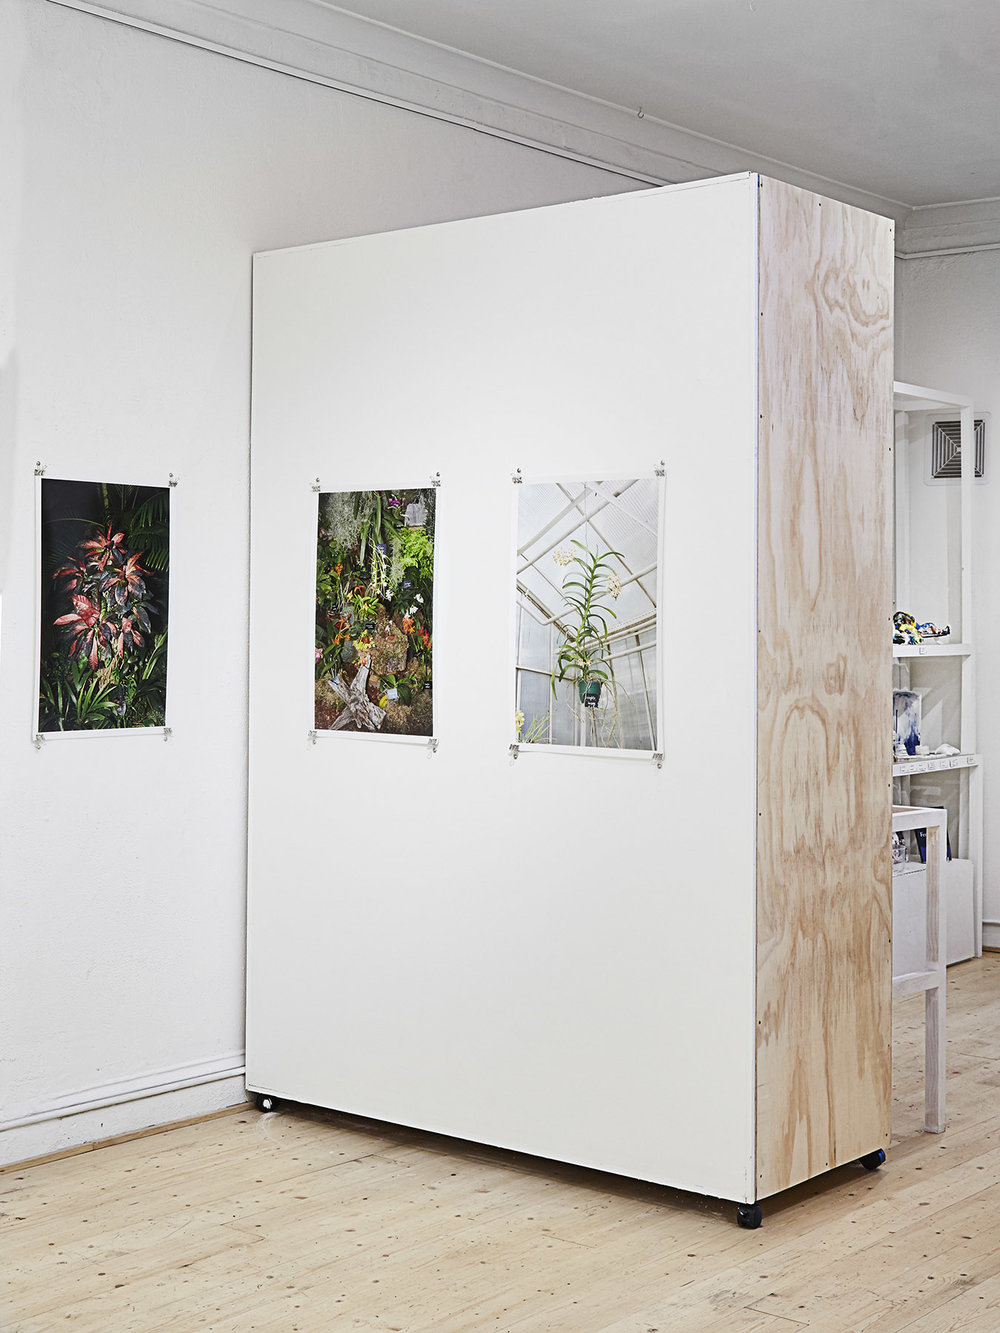 Impossible Plants  installation view